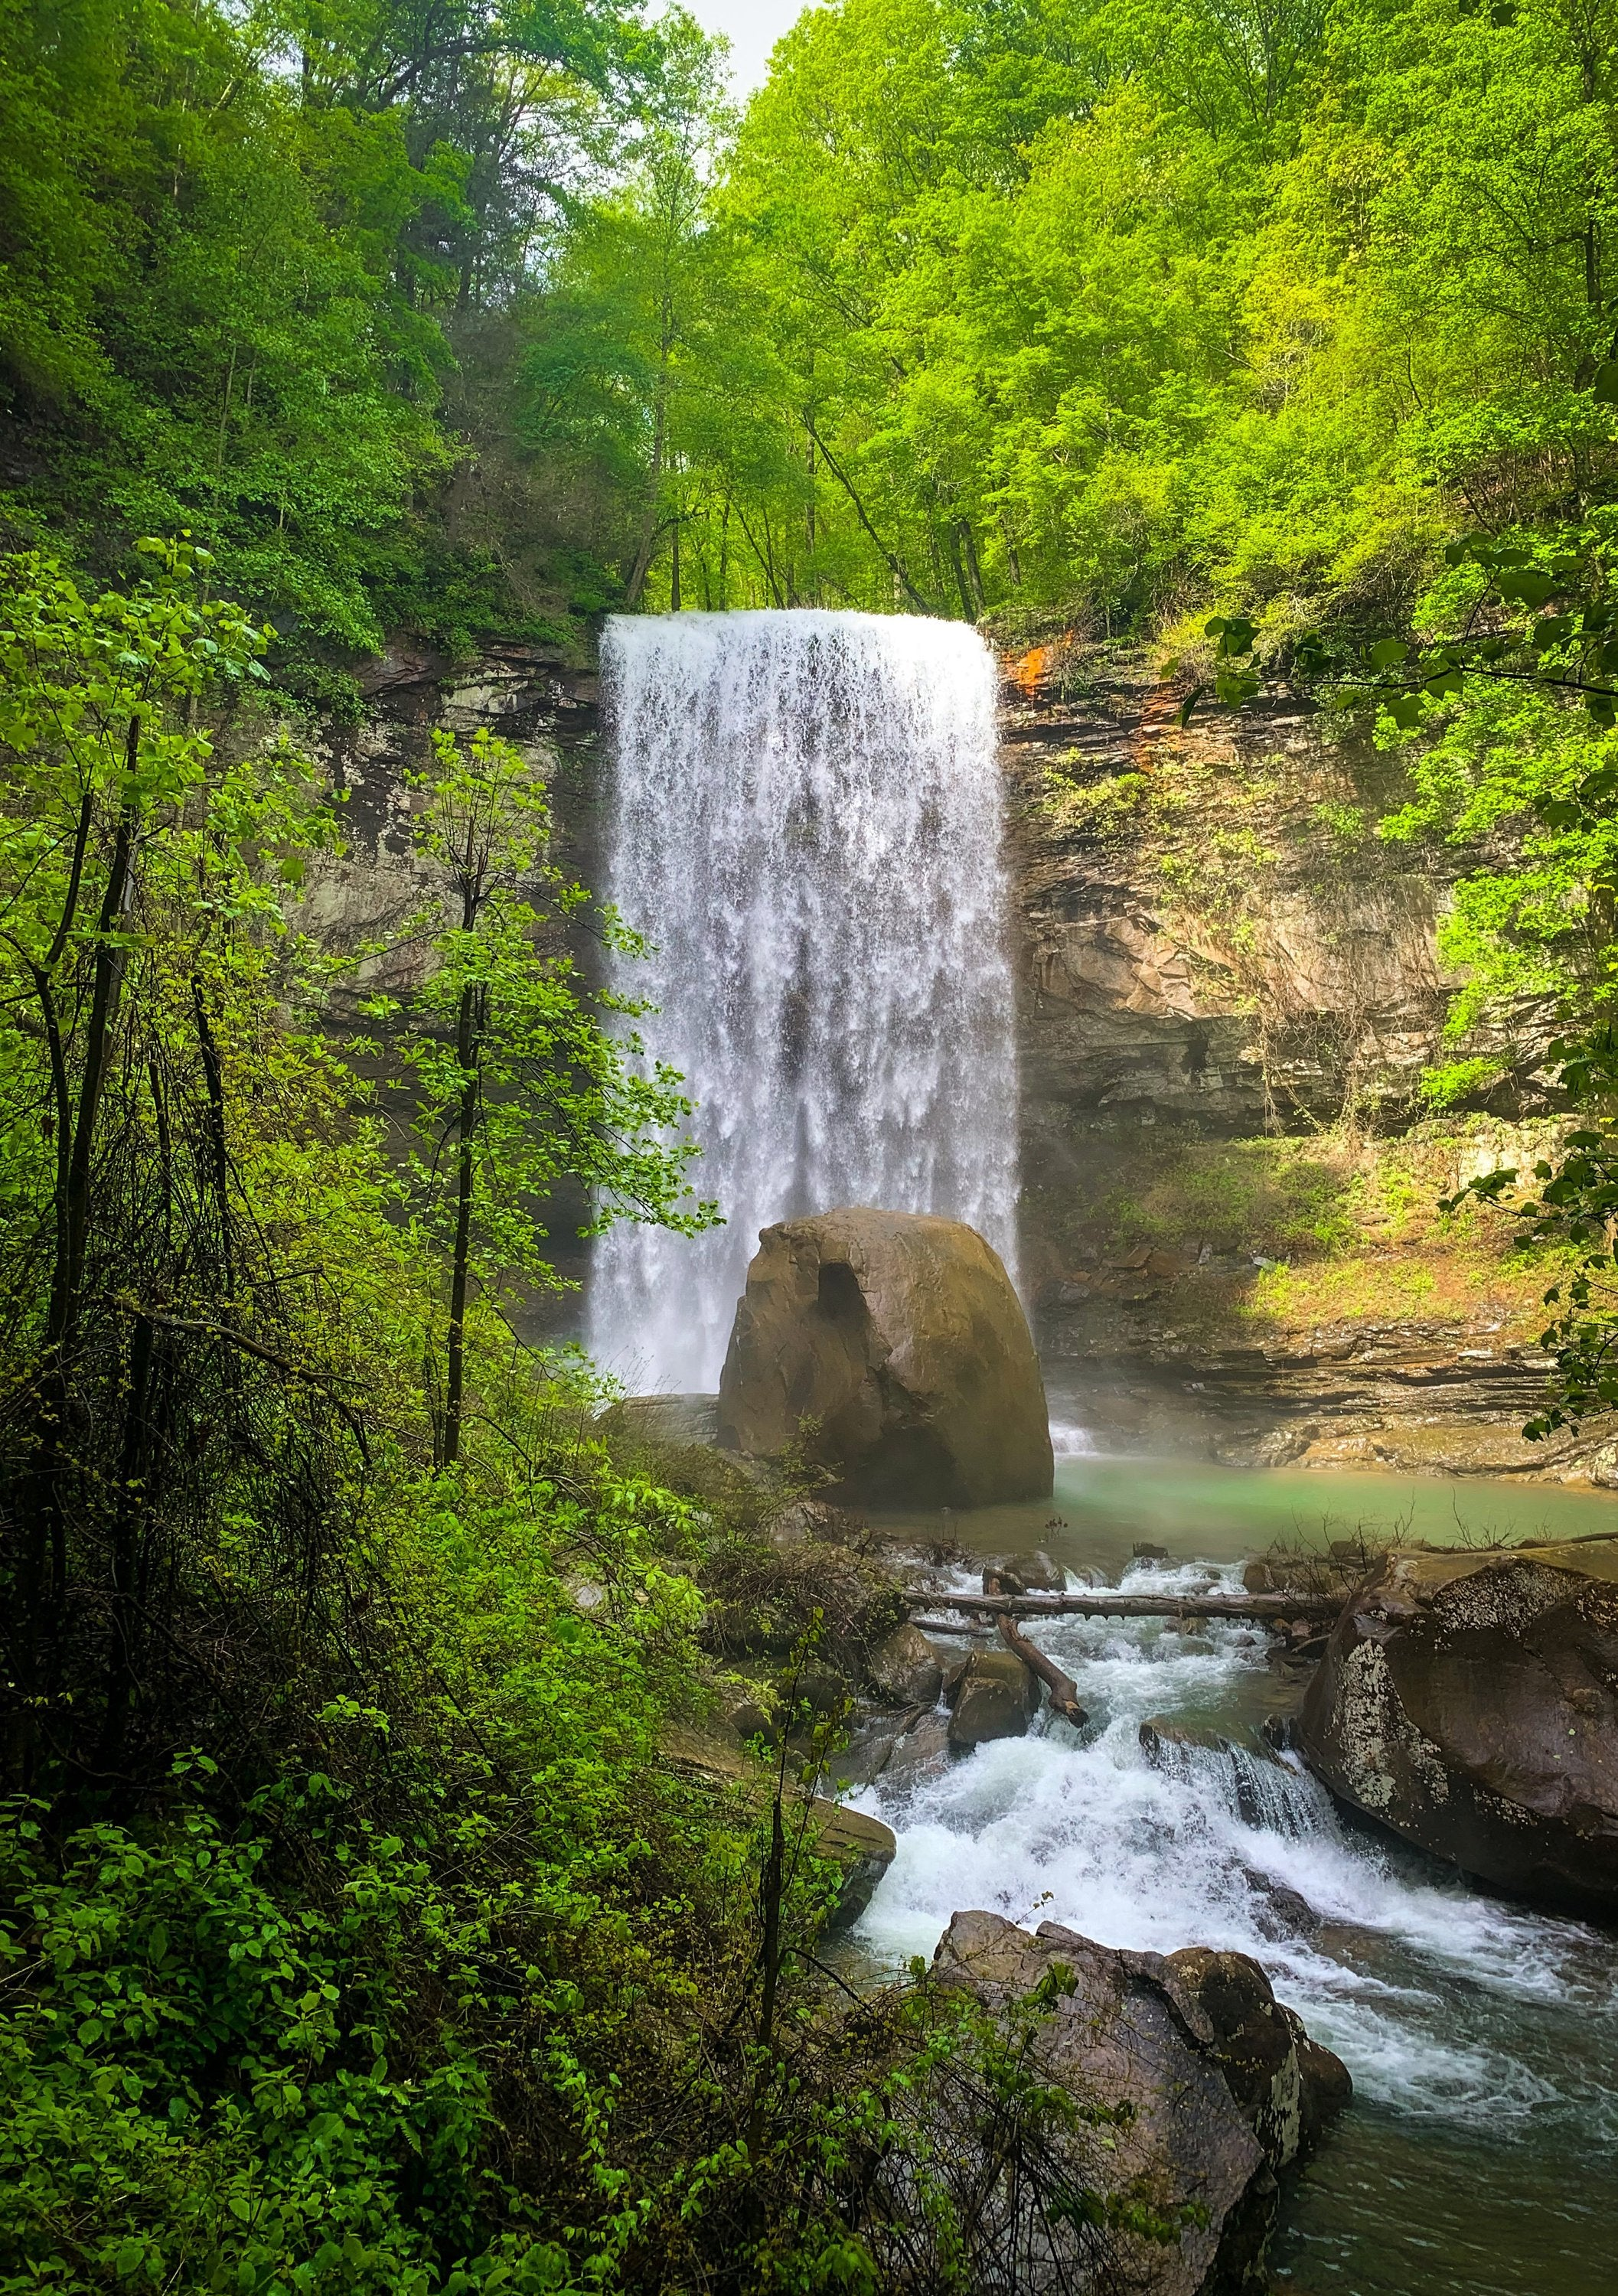 Chasing Waterfalls - J. Thomas Photography